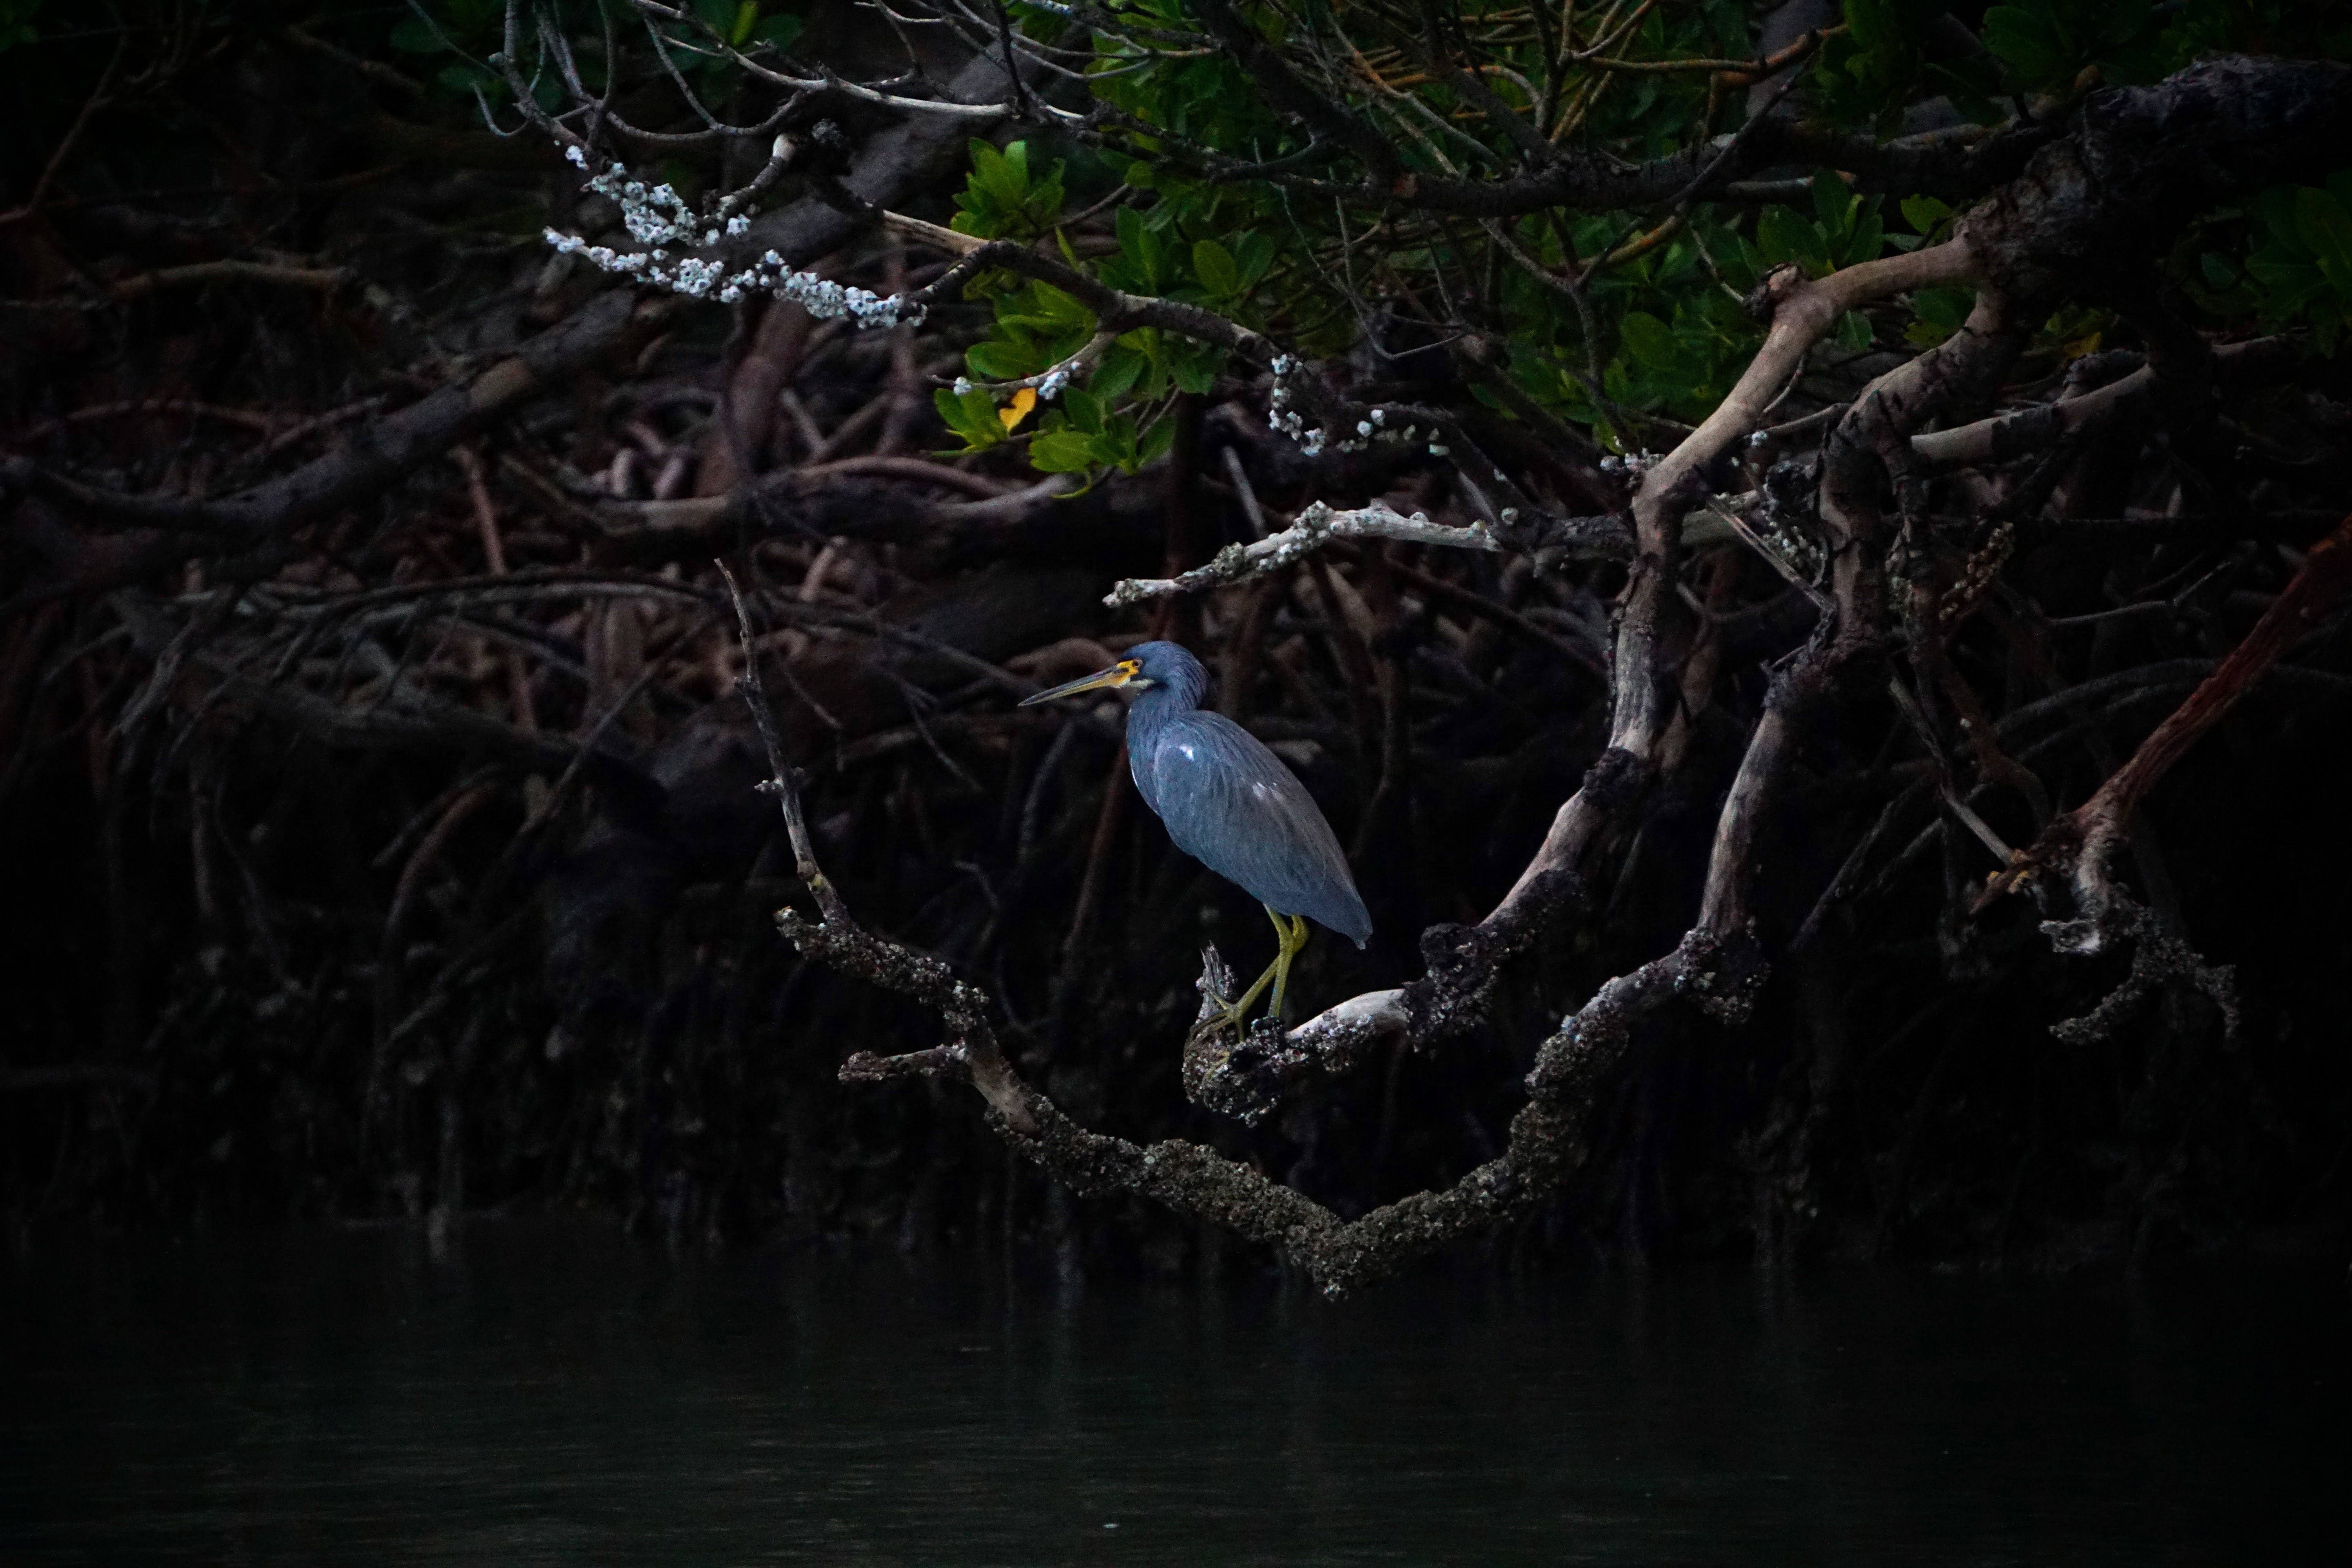 a blue heron on a branch in a swamp